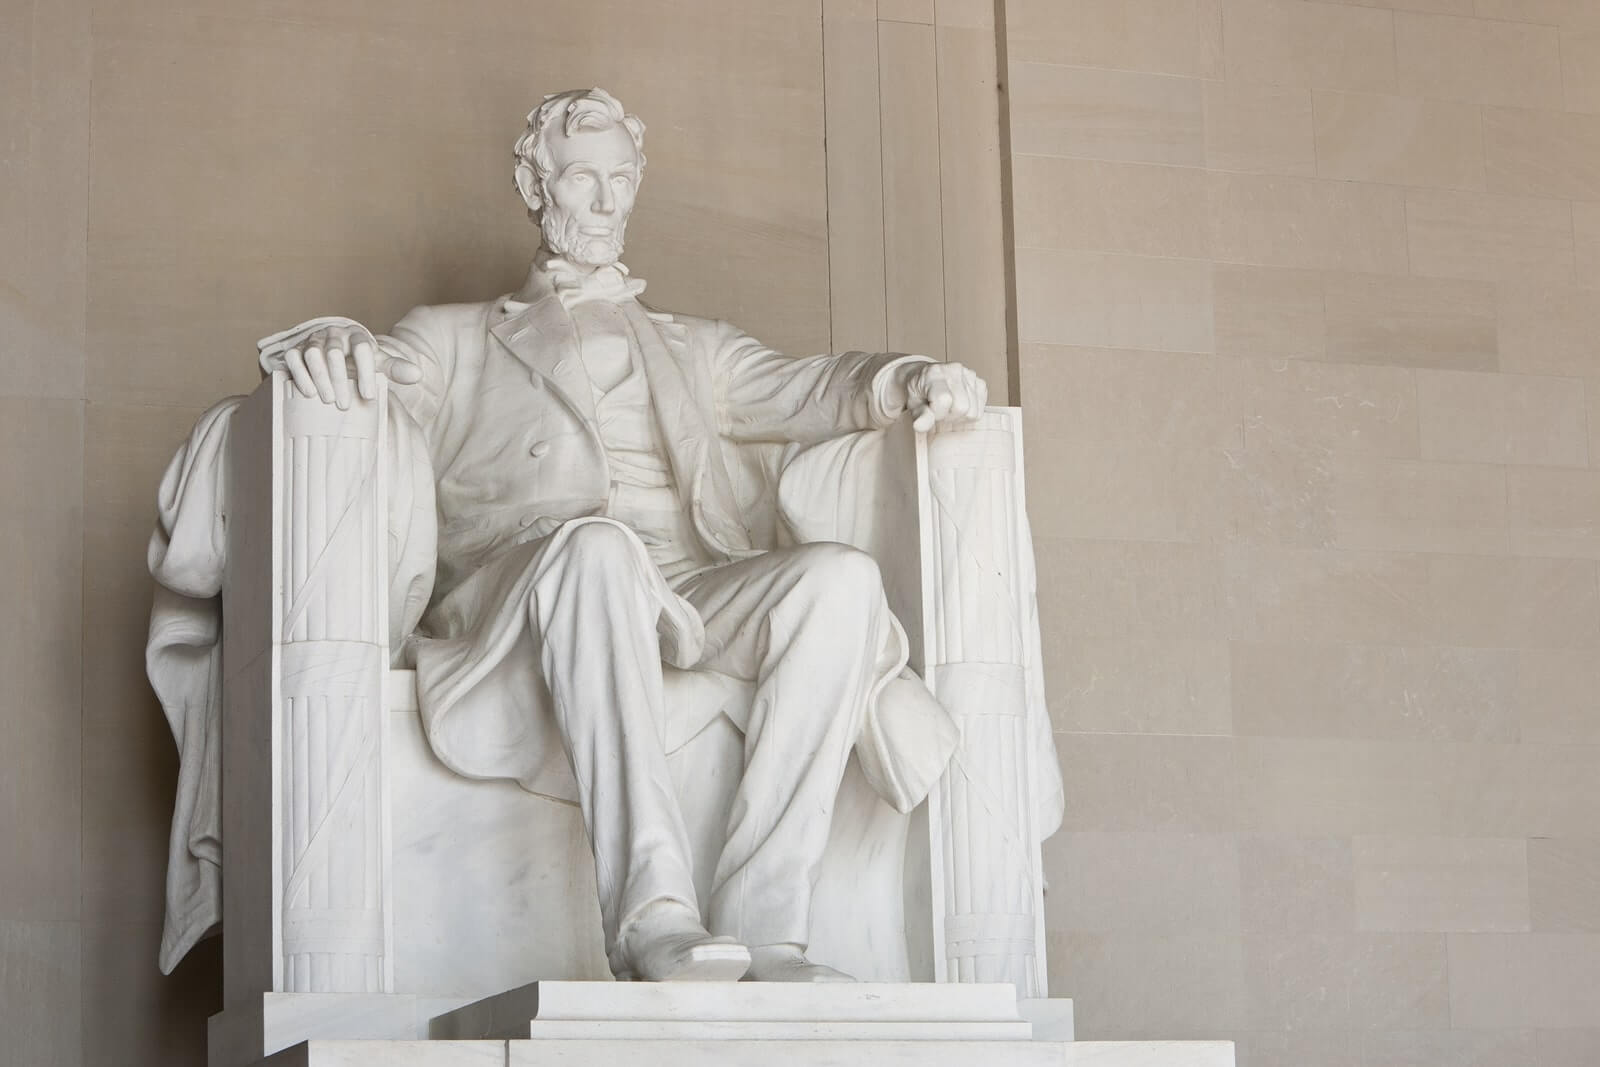 lincoln-memorial-washington-dc-united-states.jpg